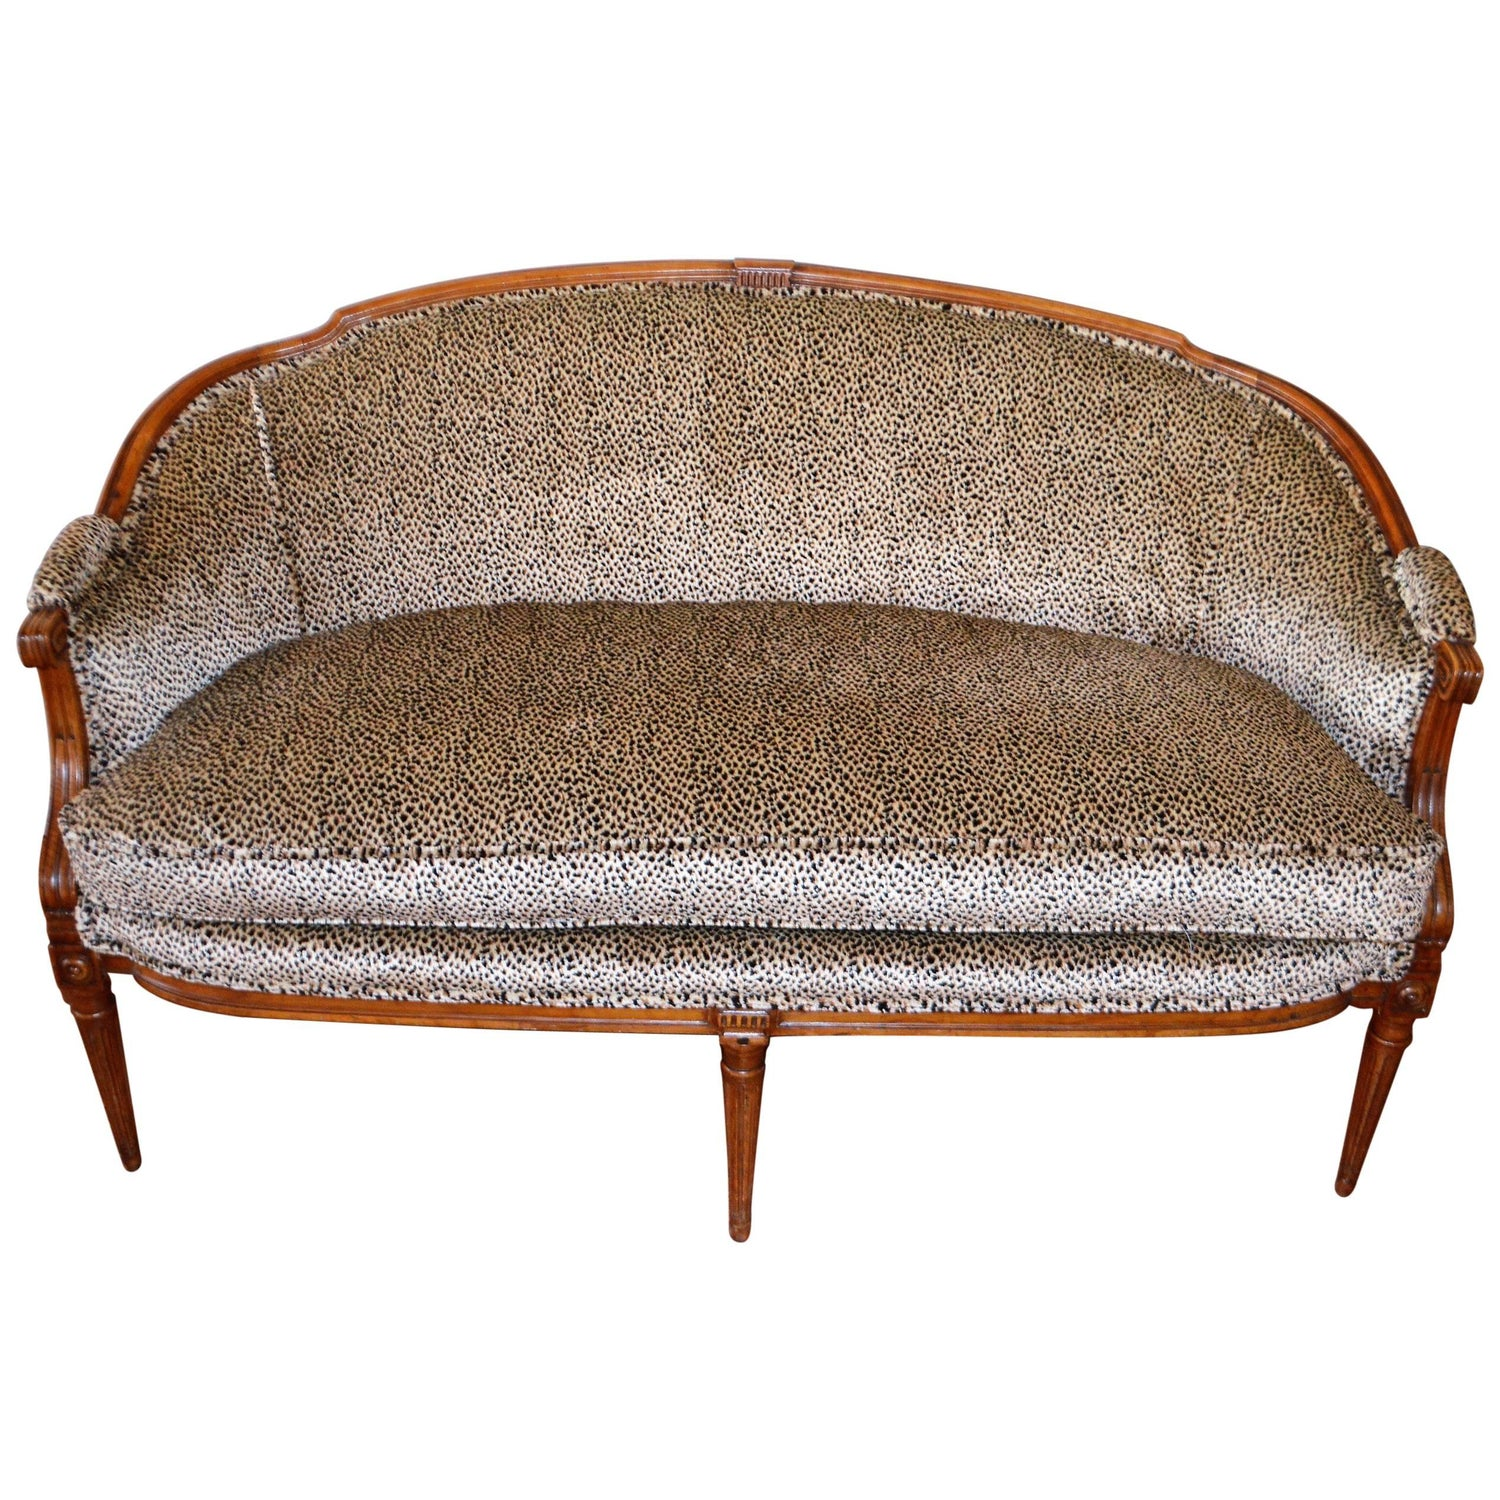 Vintage Settee Sofa in Louis XVI Style Made in France circa